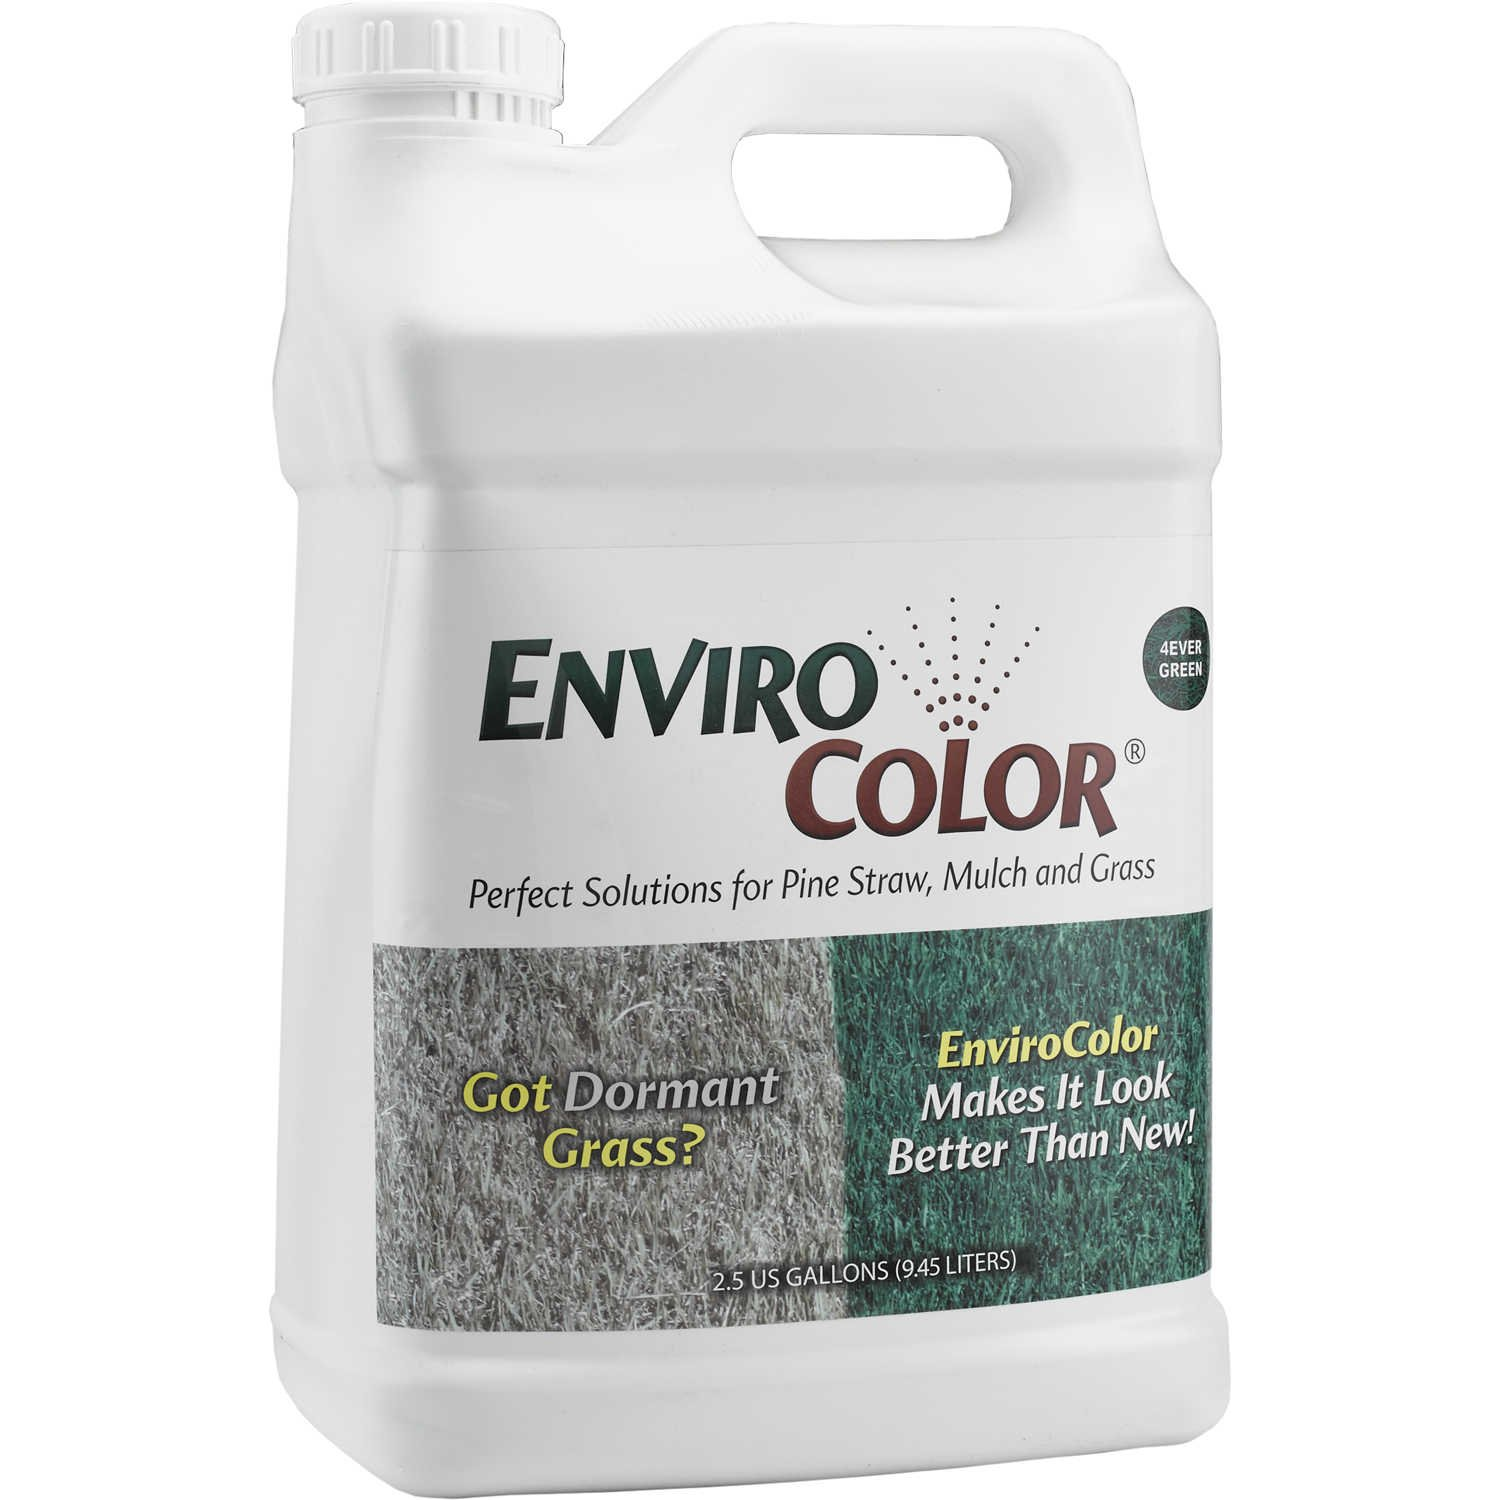 10,000 Sq. Ft 4Ever Green Grass and Turf Paint - Have a green lawn all winter long! by EnviroColor